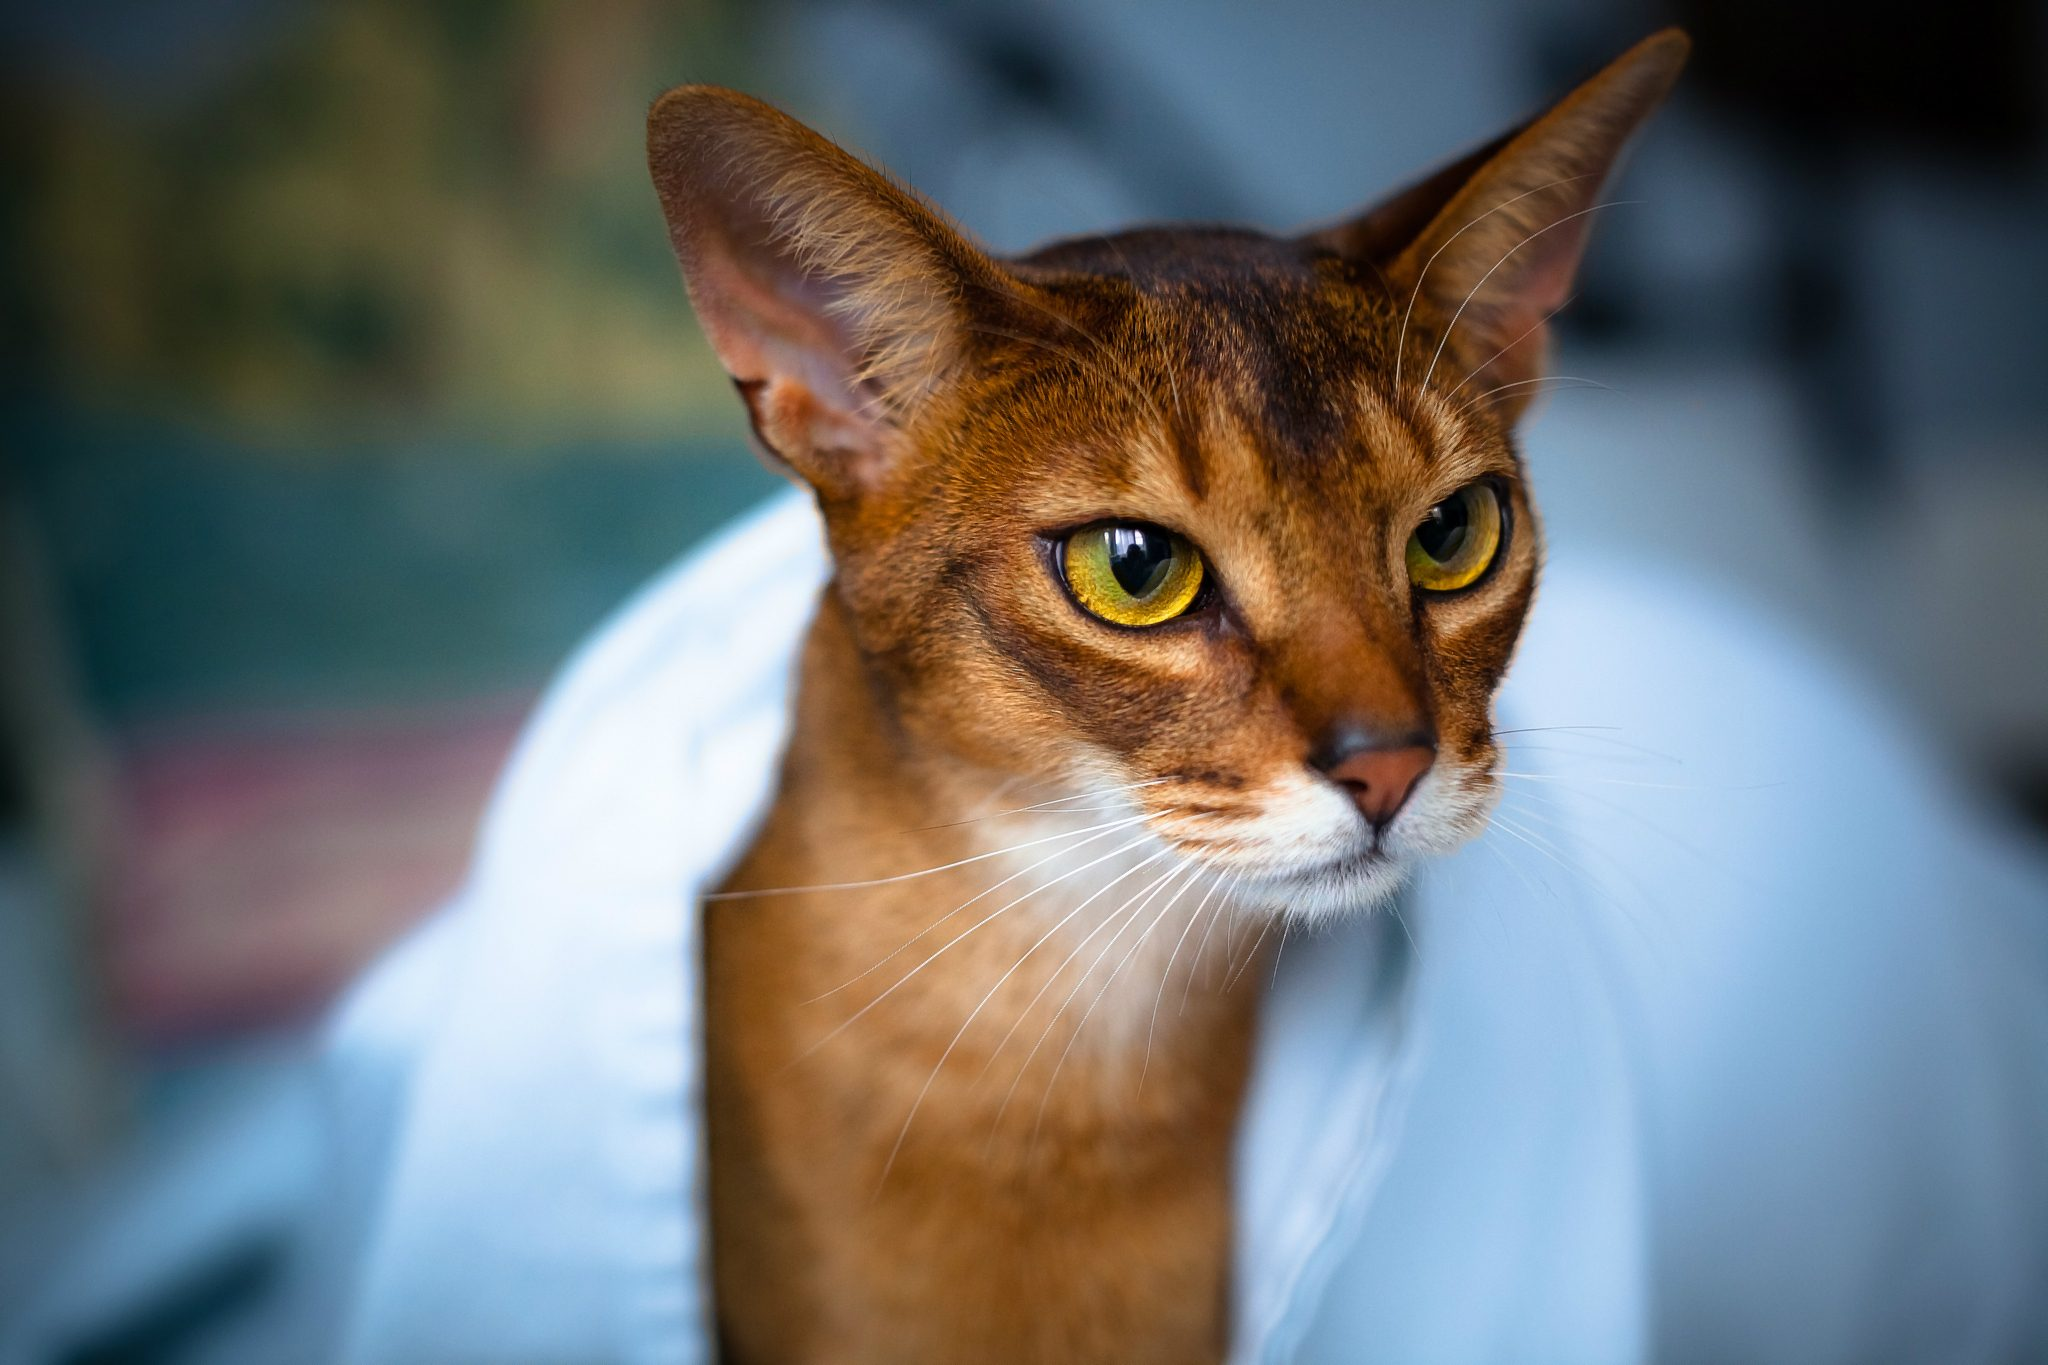 124524 Screensavers and Wallpapers Beautiful for phone. Download Animals, Cat, Muzzle, Beautiful, Sight, Opinion, Abyssinian Cat pictures for free